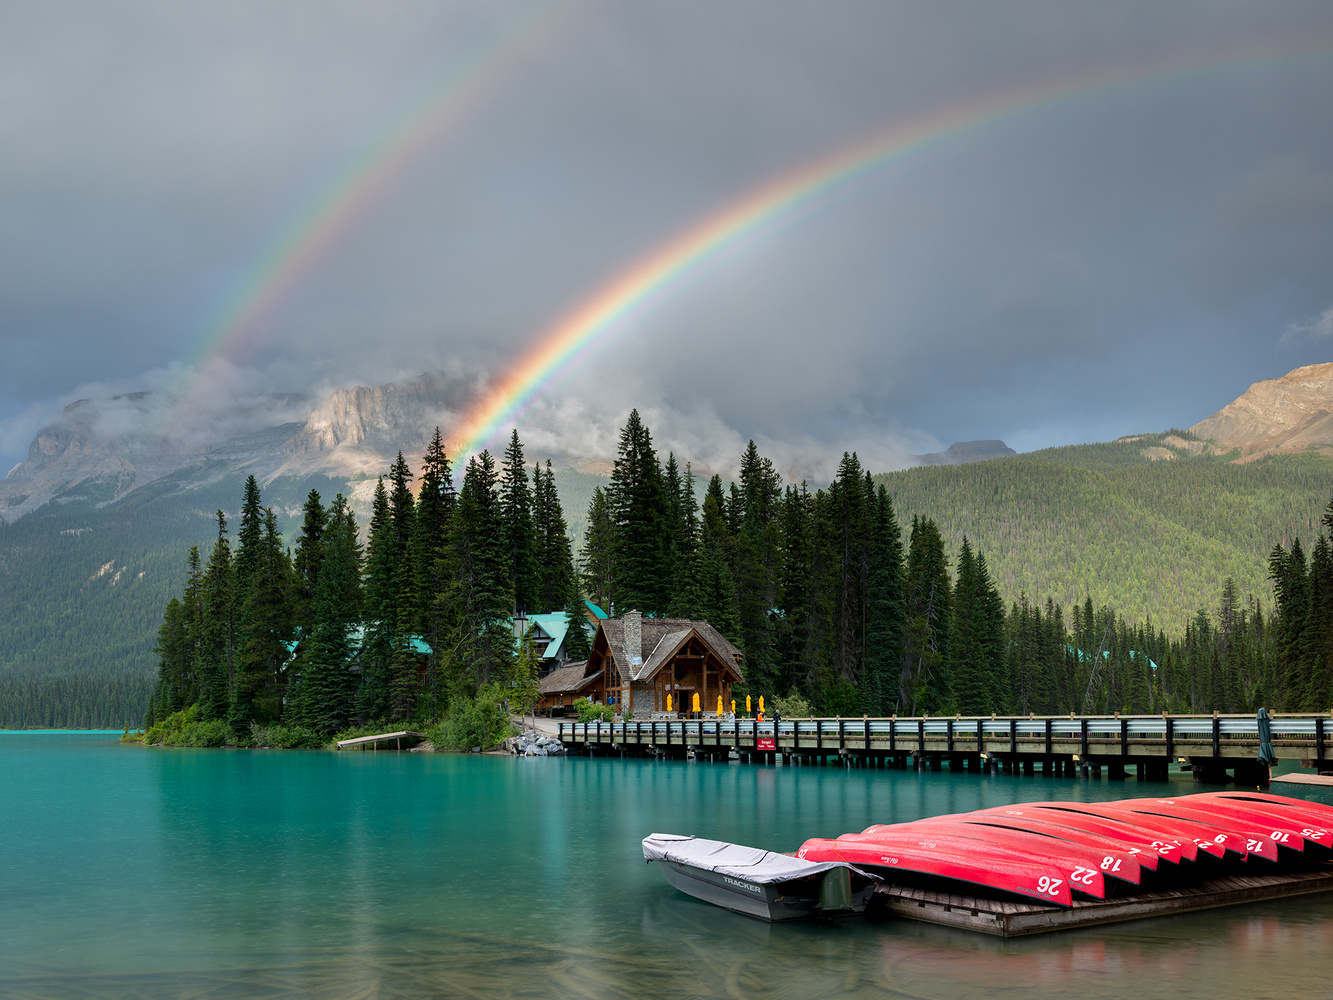 Emerald Lake by Destin Sparks